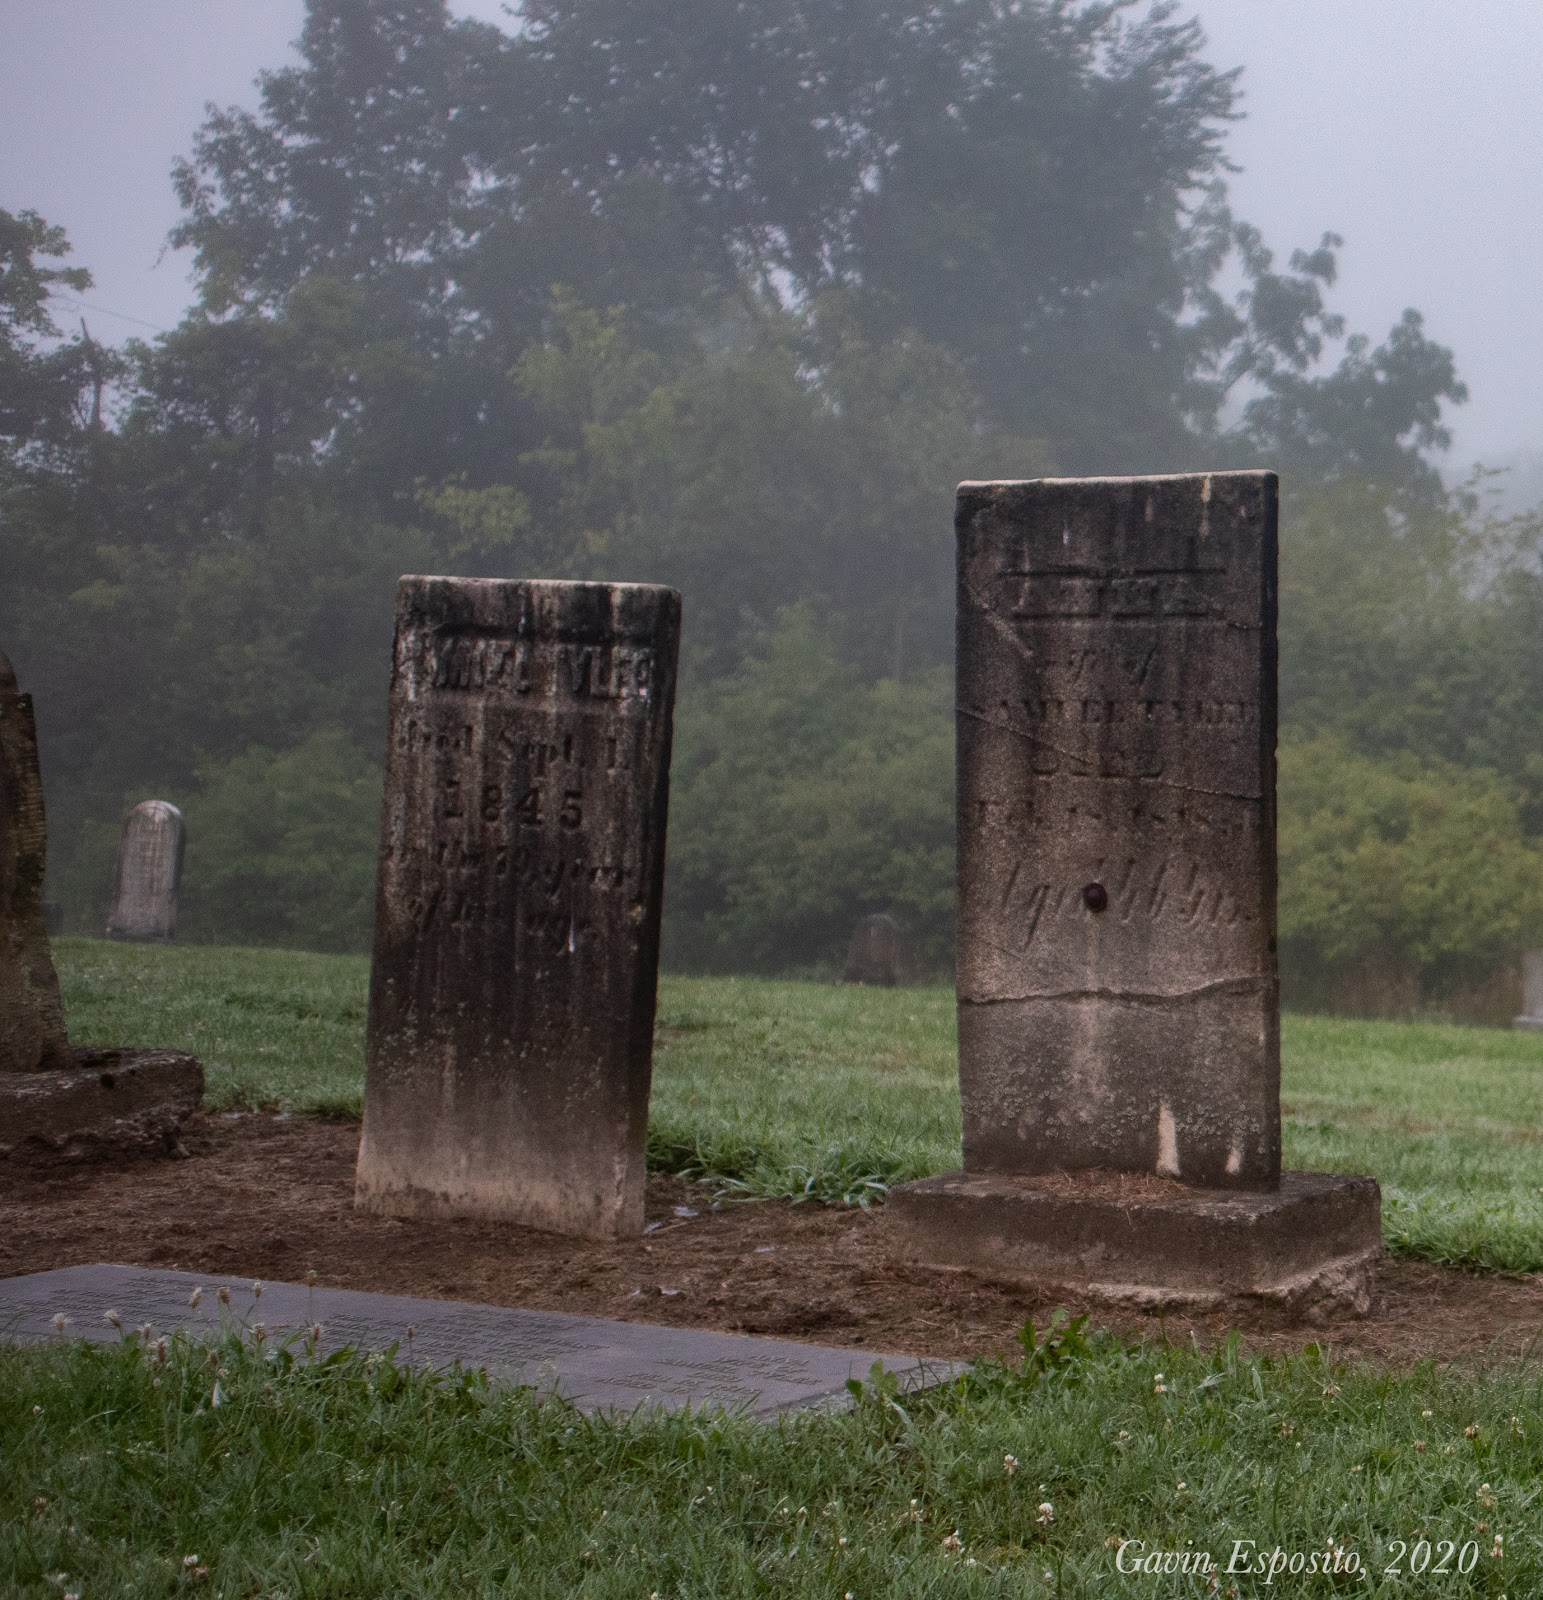 Samuel (left) and Anna (right) Tylee's headstones (Photo by Gavin Esposito).